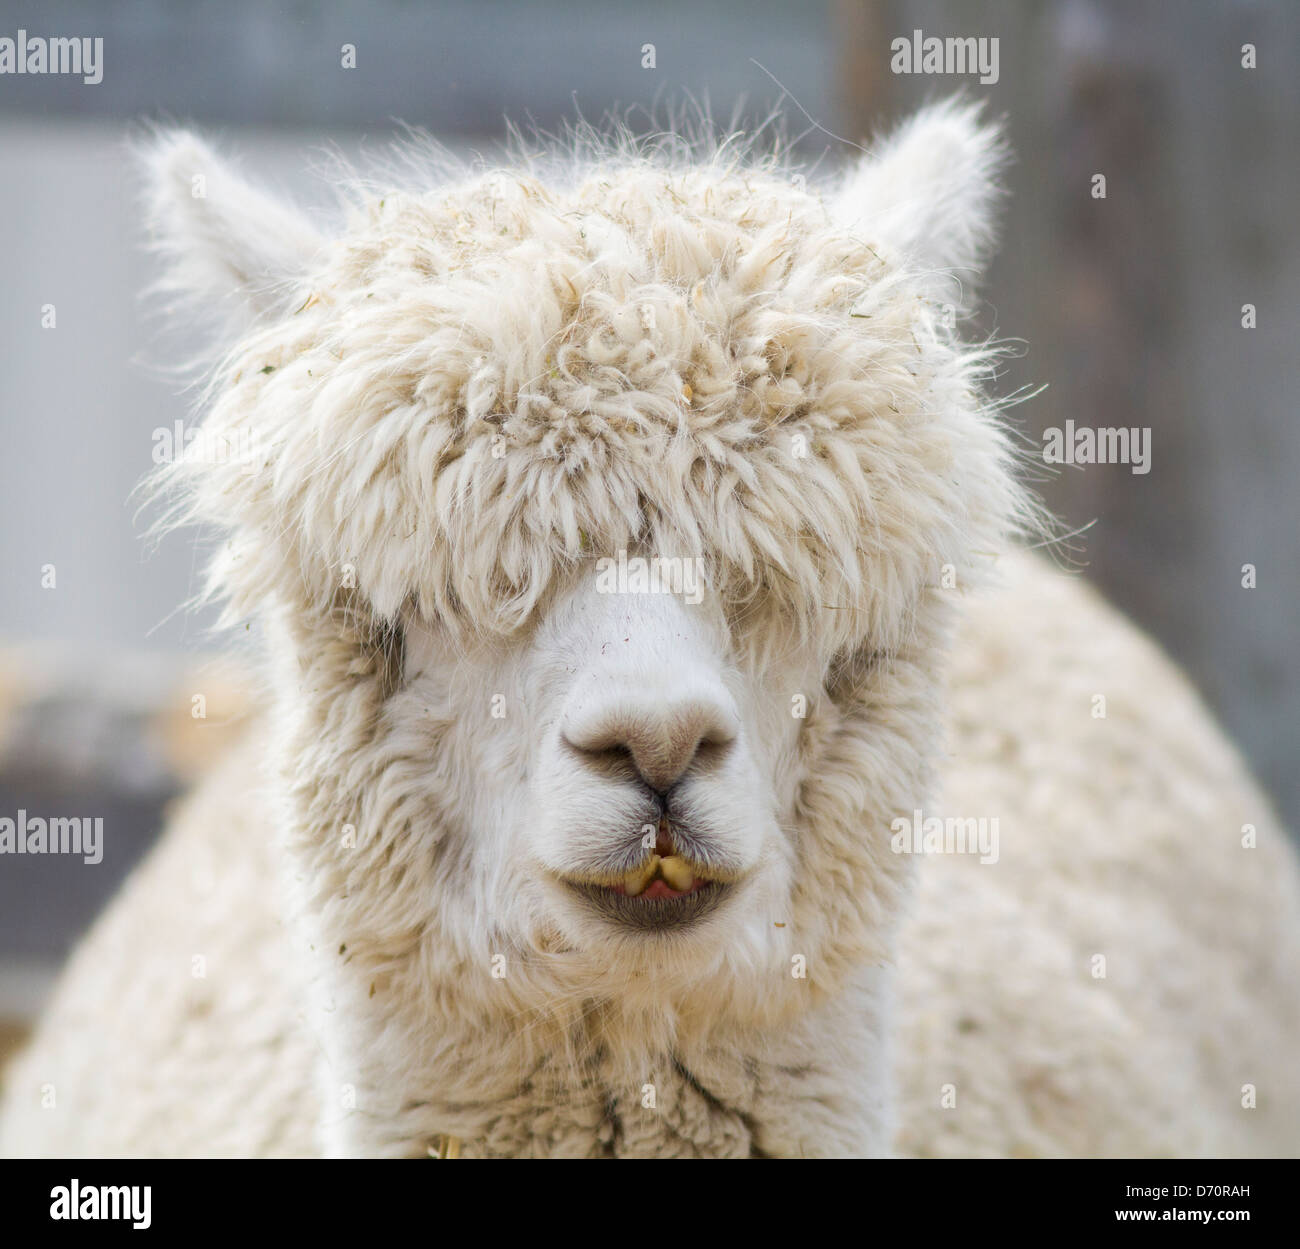 A curious white alpaca in winter. - Stock Image